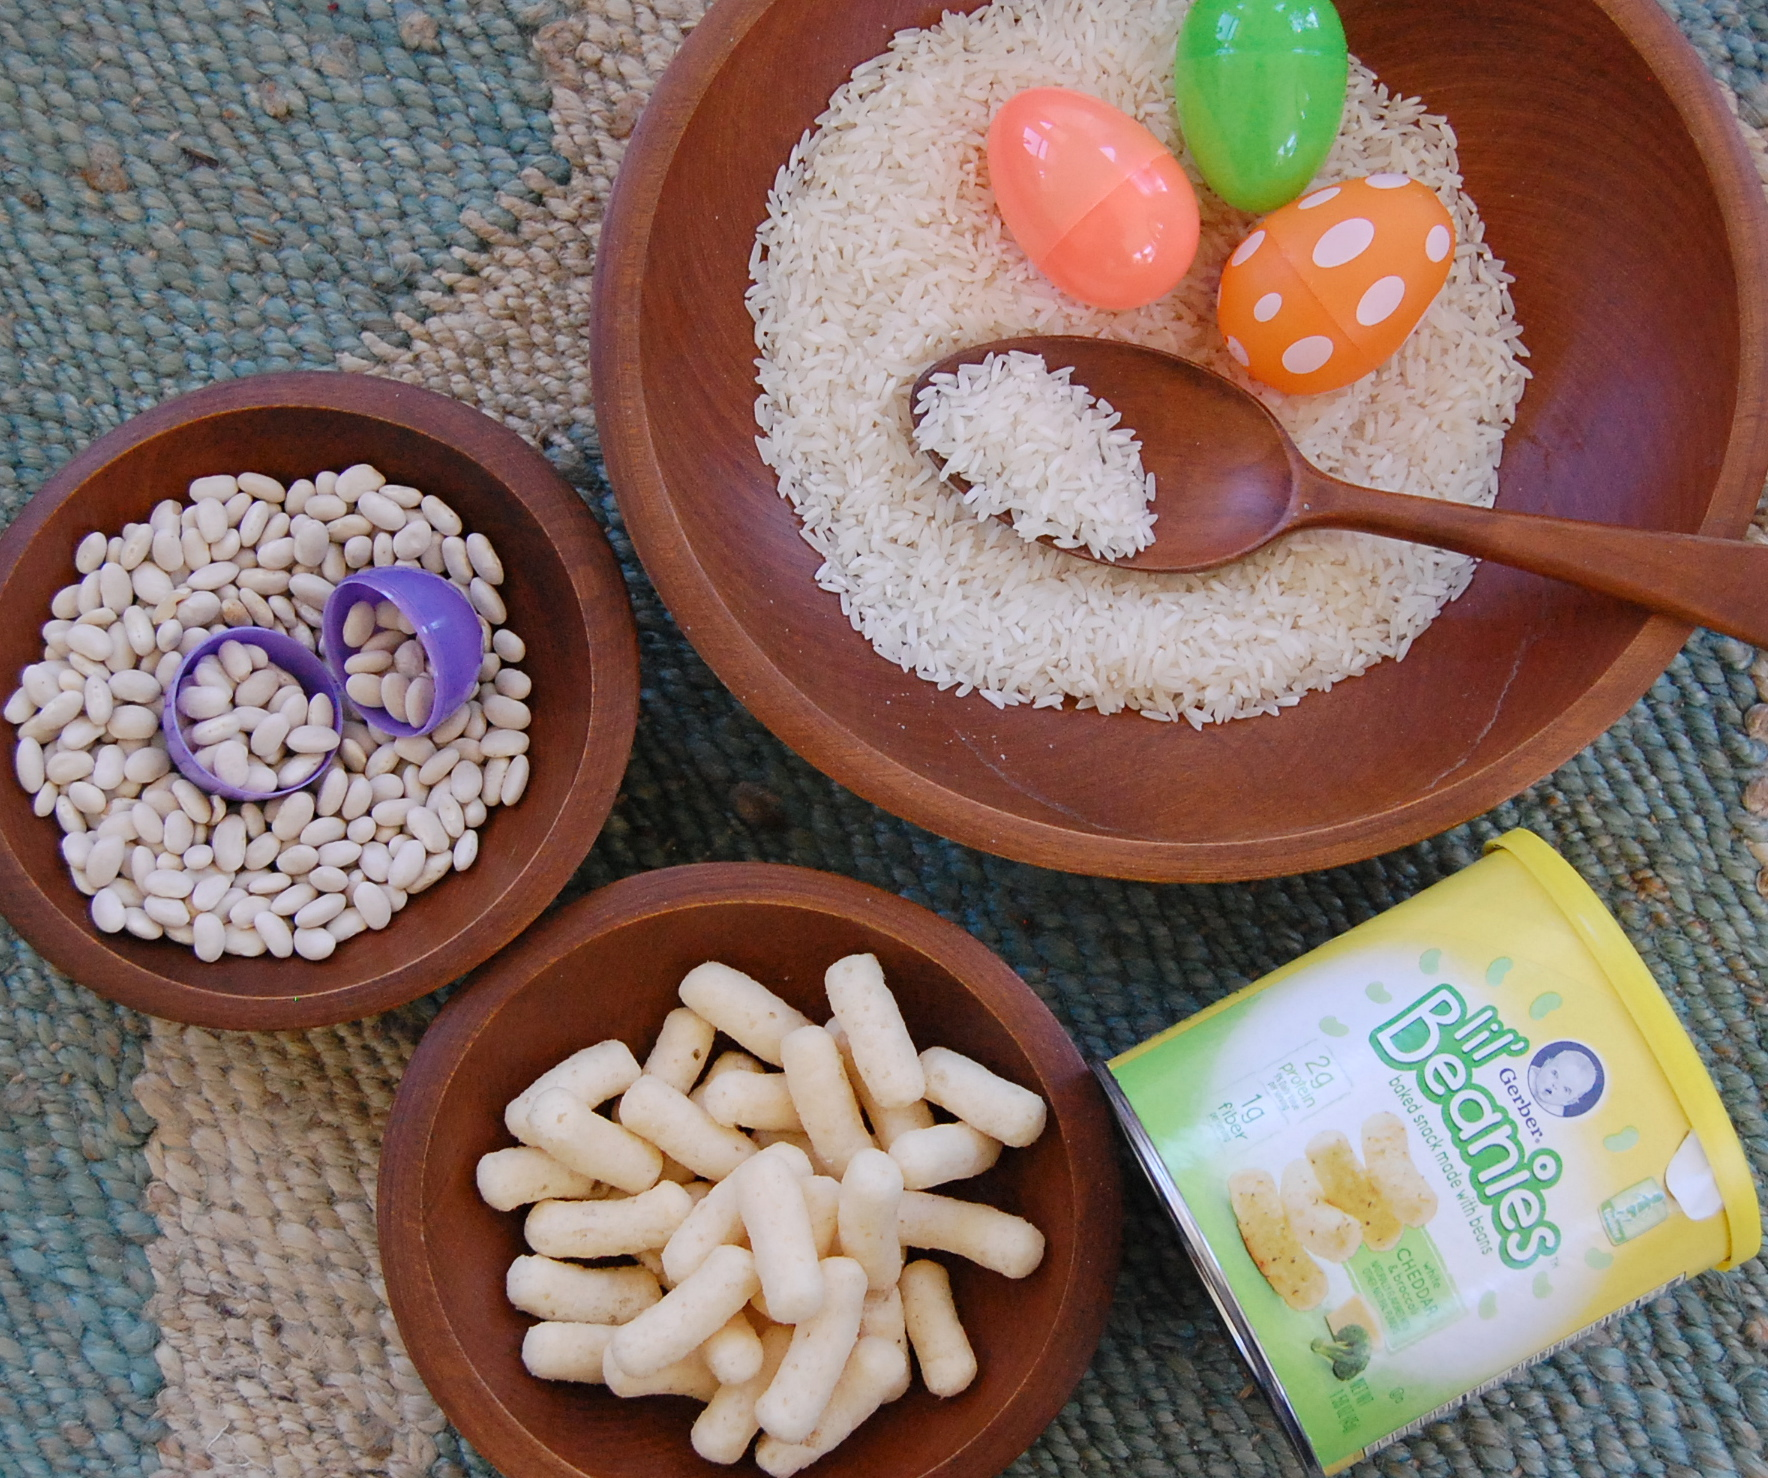 A fun toddler sensory experience using items from your pantry and leftover Easter eggs! #gerberlilbeanies #sensoryplay #toddlerplay #toddler snacks juliannegray.com